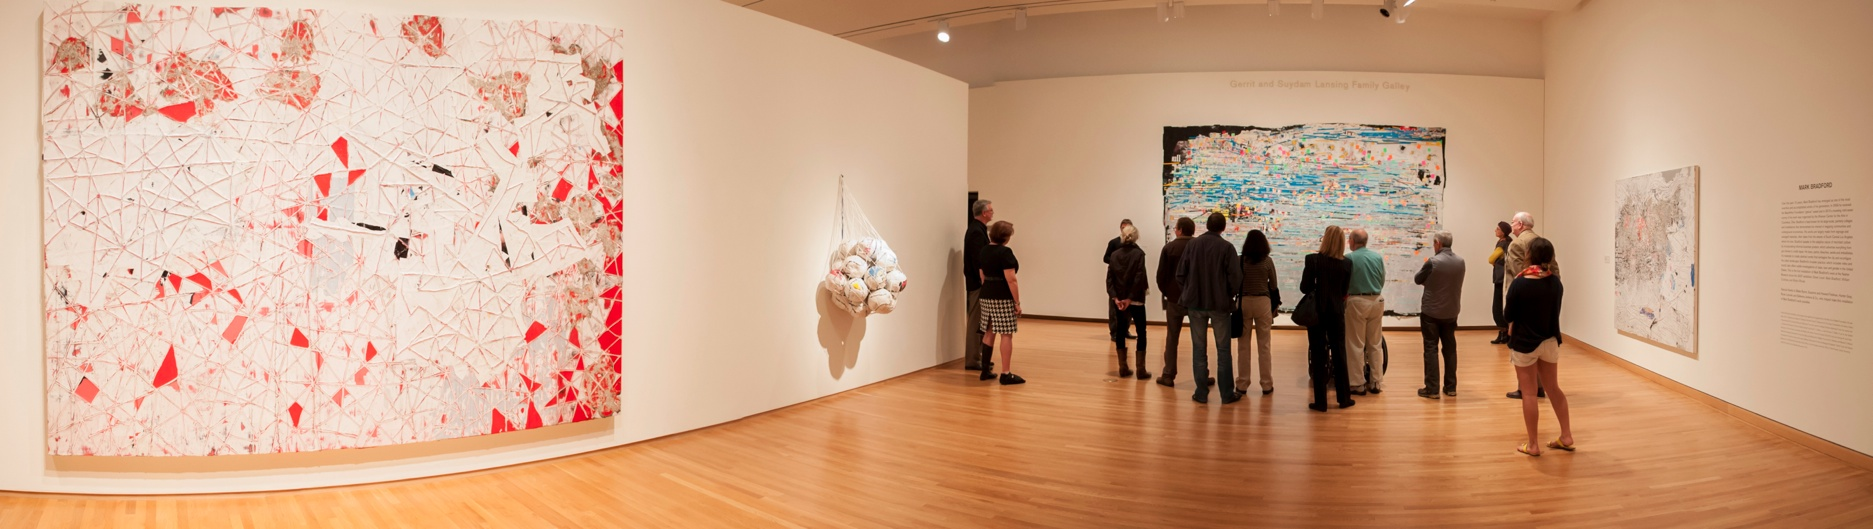 Visitors tour an installation of Mark Bradford's work, including his mixed media work Red Painting, Soccer Ball Bag 4 and Potable Water with Trevor Schoonmaker, Chief Curator and Patsy R. and Raymond D. Nasher Curator of Contemporary Art.